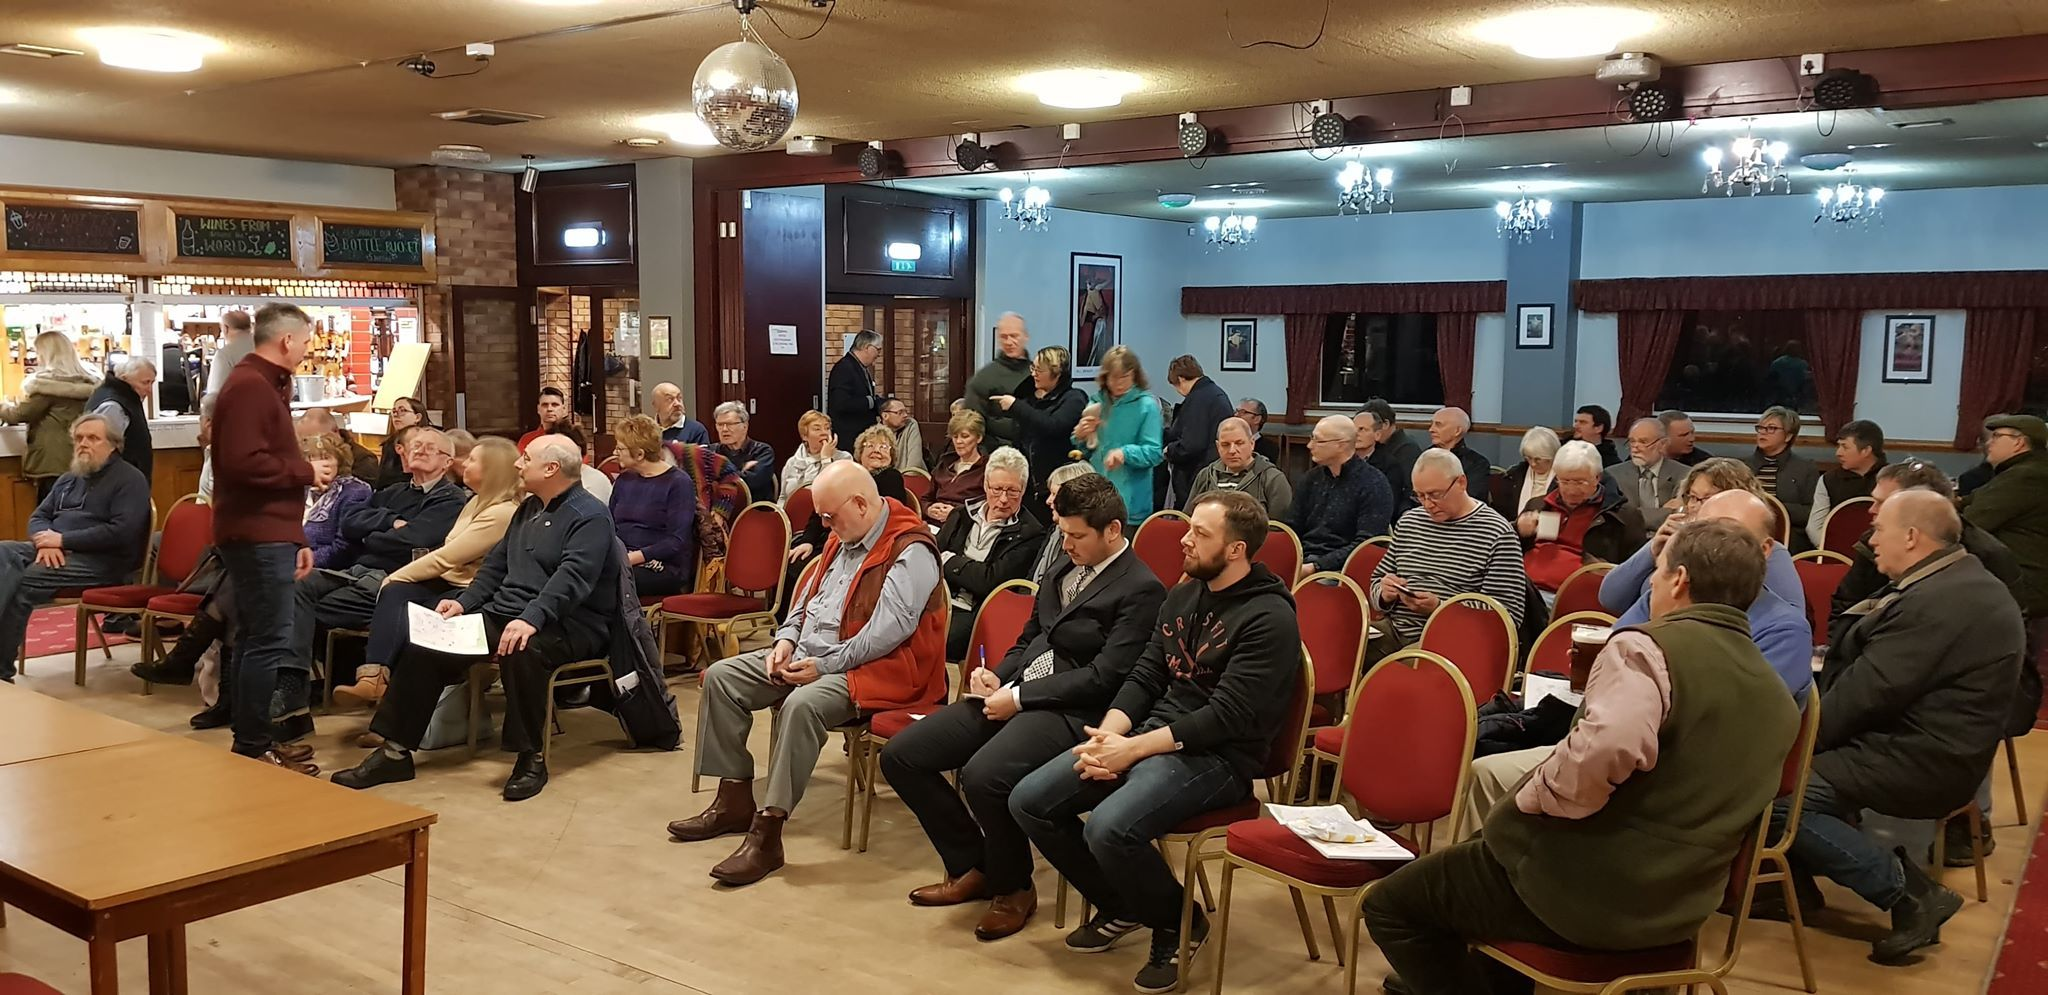 Over 150 people attended a meeting, which was organised by members of the Norton and Malton Local Traffic Congestion, in a bid to voice their frustration at changes to the Church Street junction